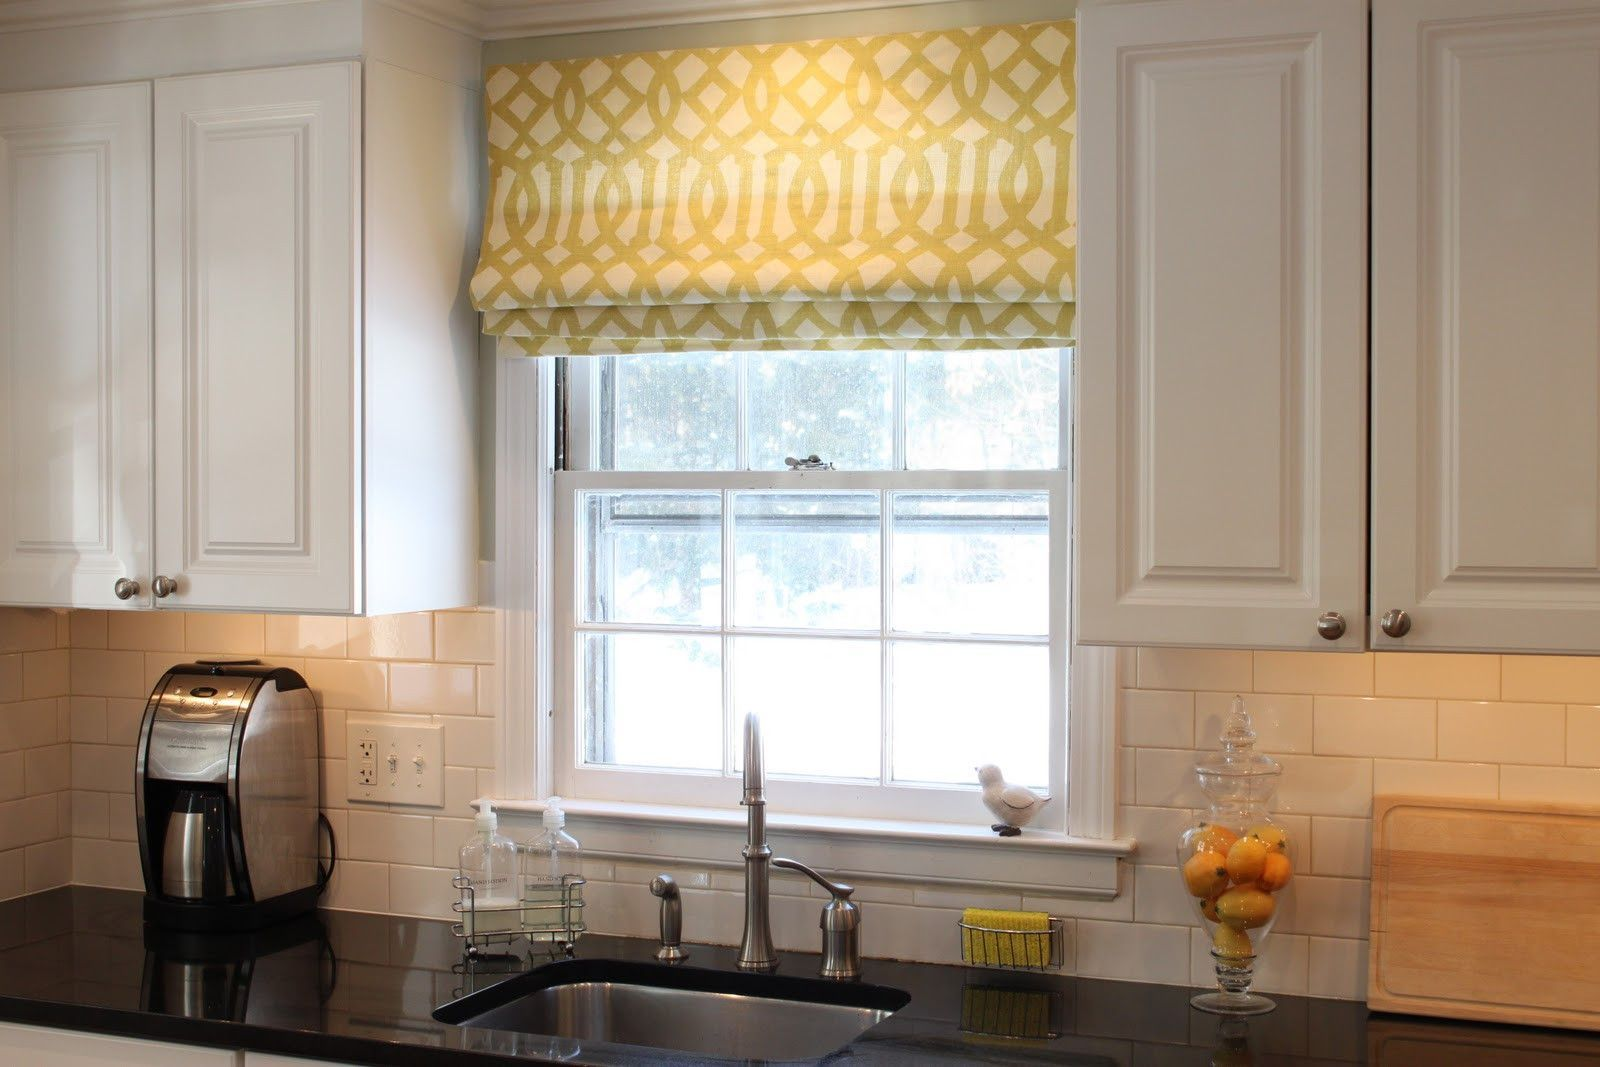 Curtains for the kitchen: choose fabric, design, color